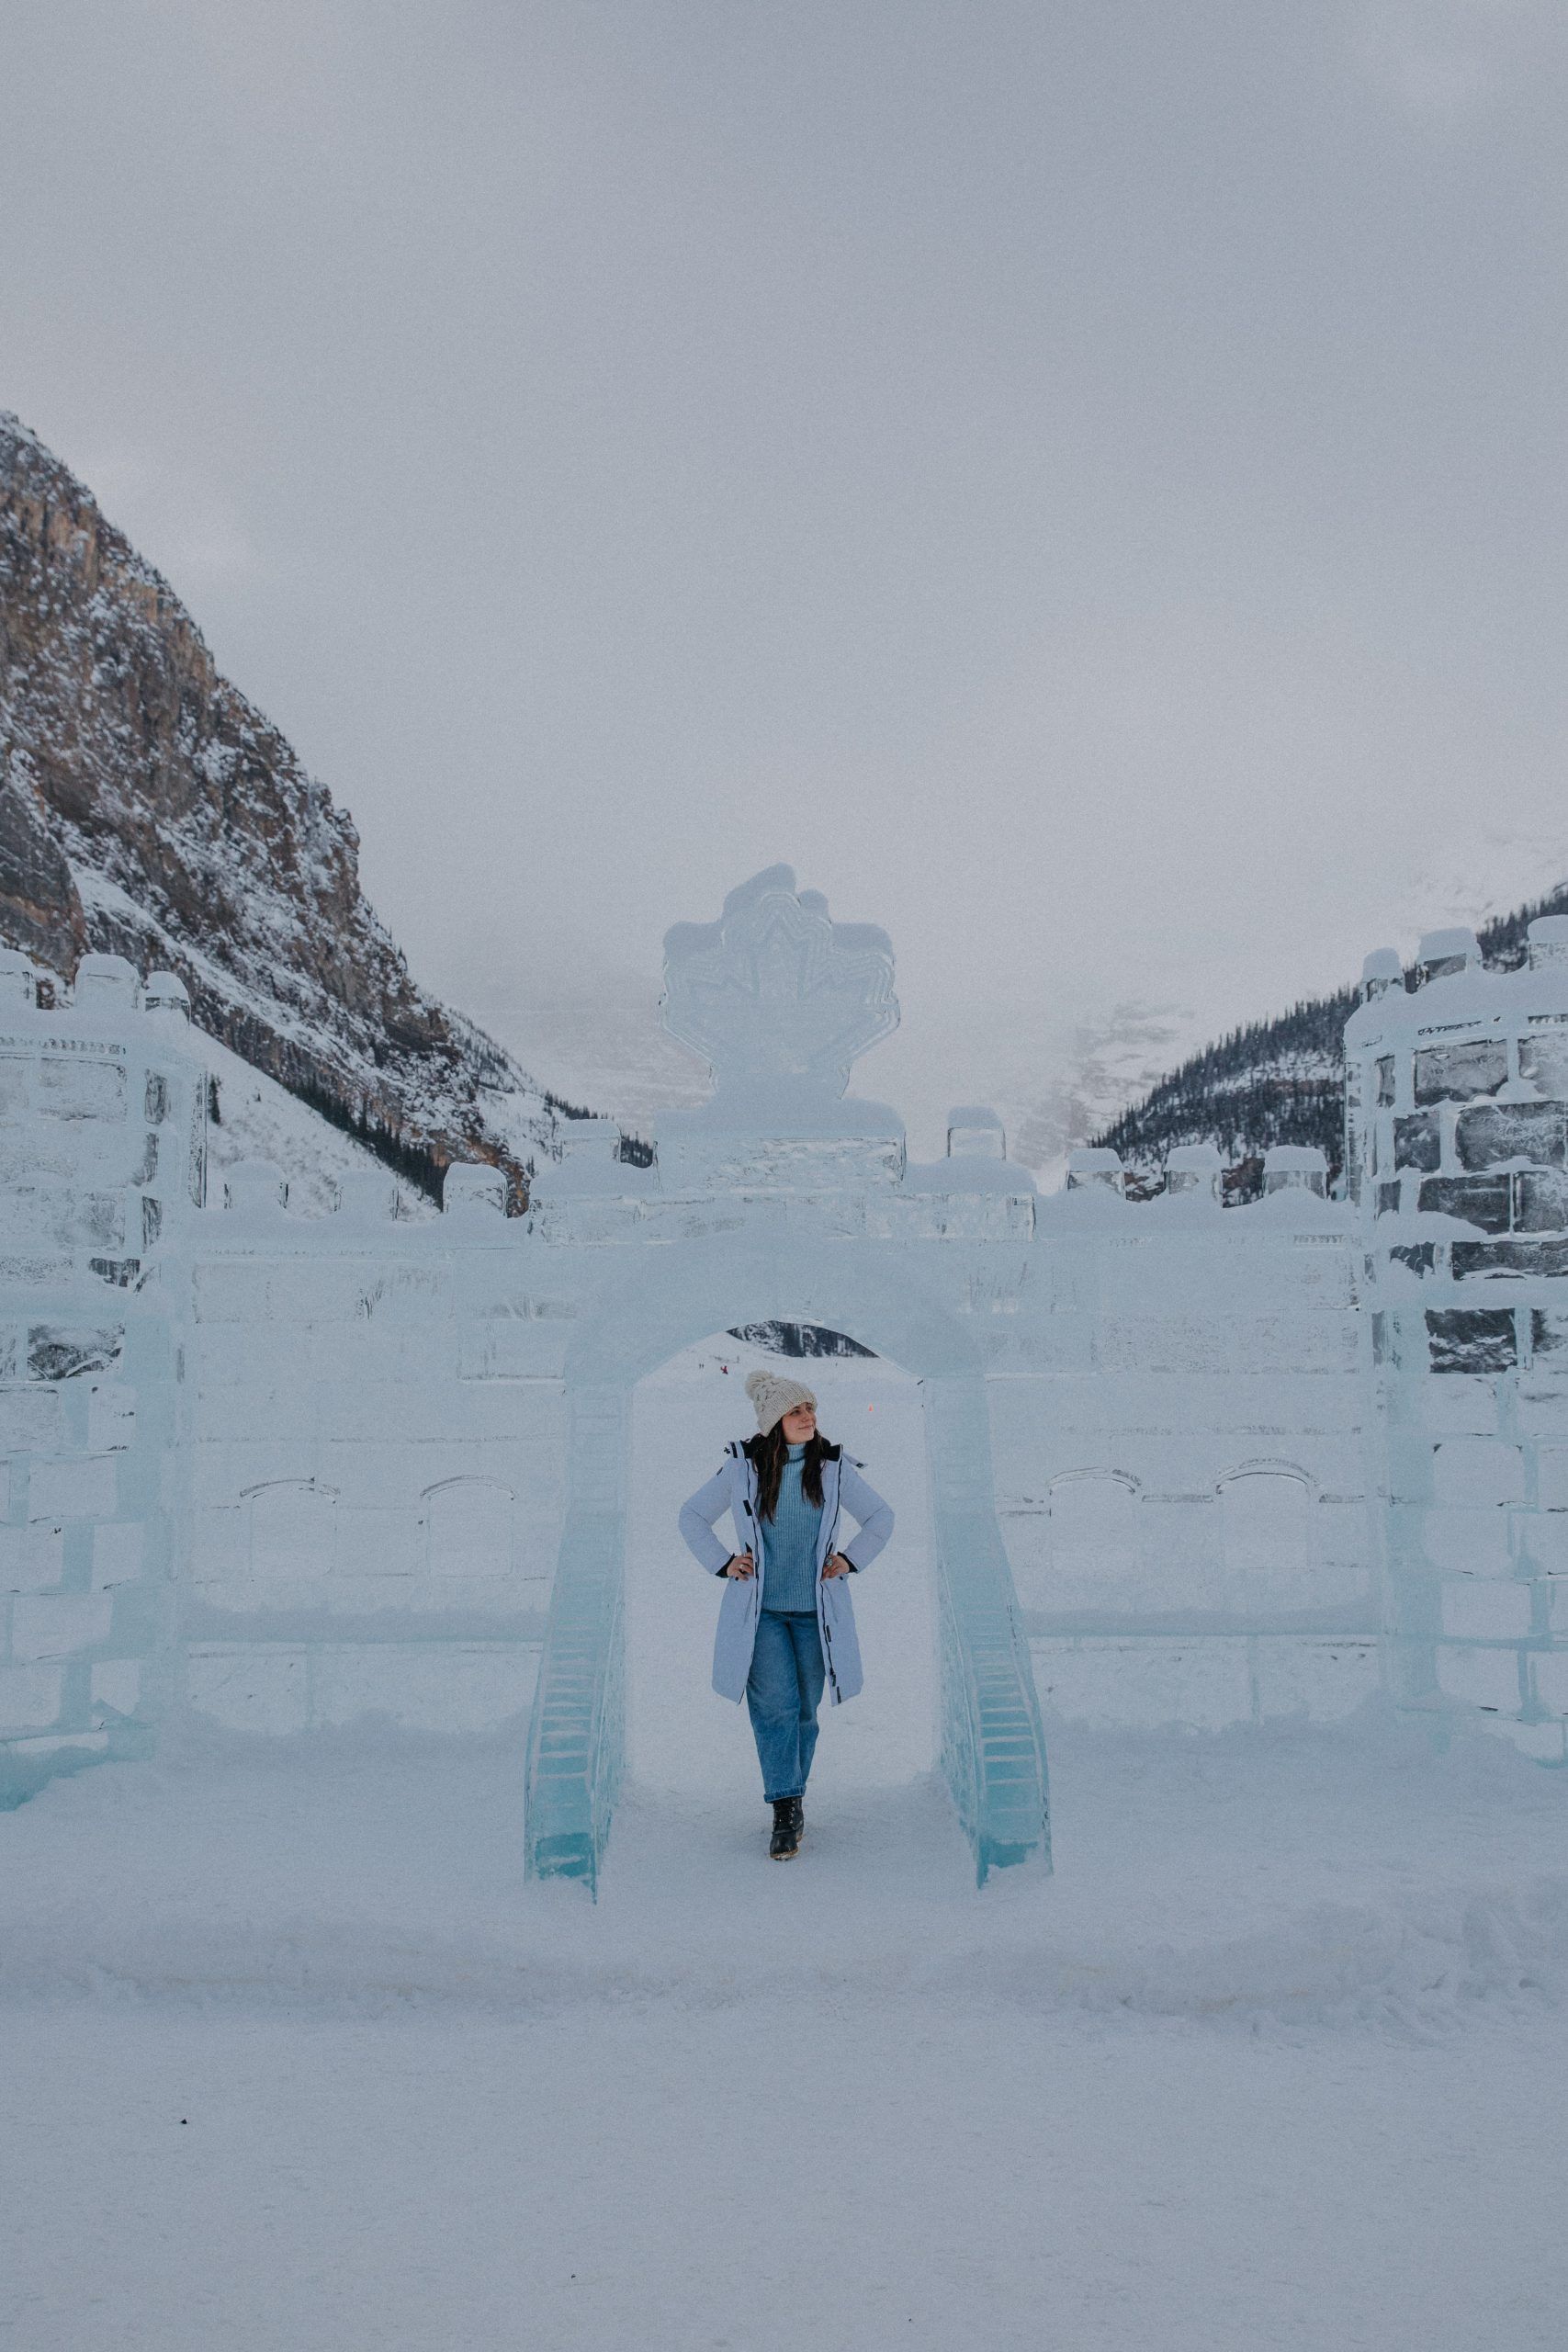 The Ultimate Banff Winter Guide - Ice Castles at Fairmont Chateau Lake Louise